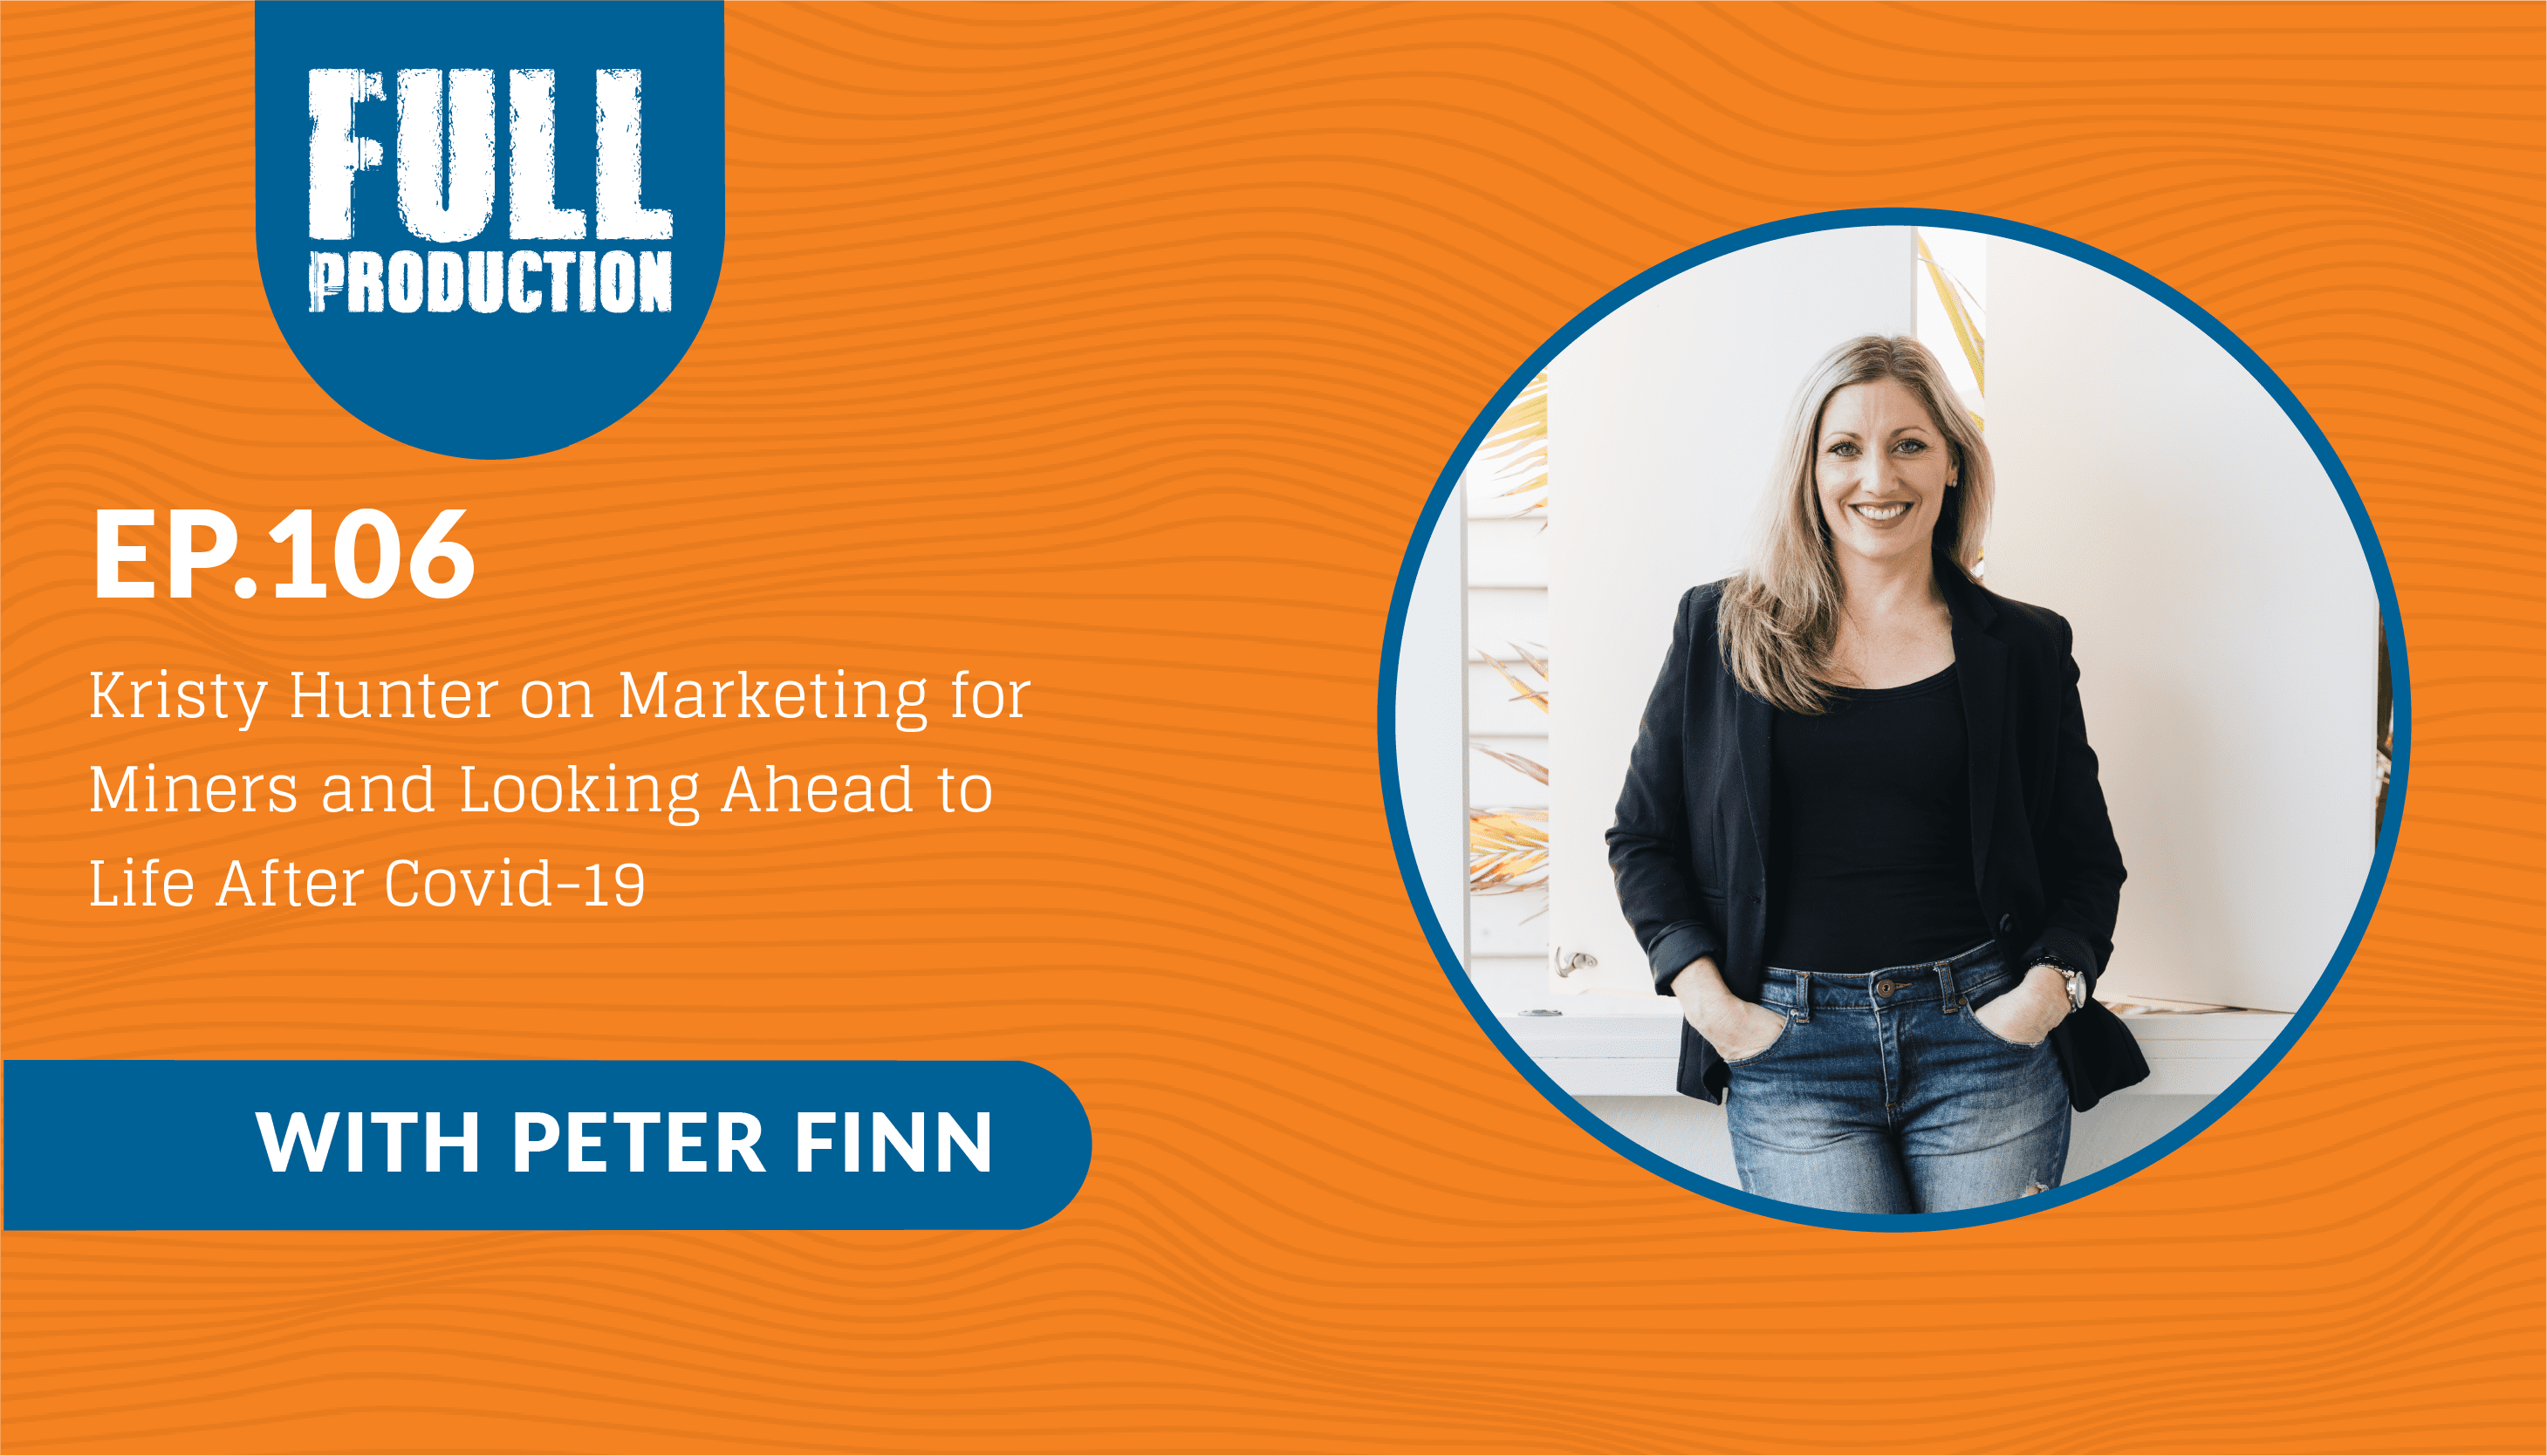 You are currently viewing EP.106 Kristy Hunter on Marketing for Miners and Looking Ahead to Life After Covid-19